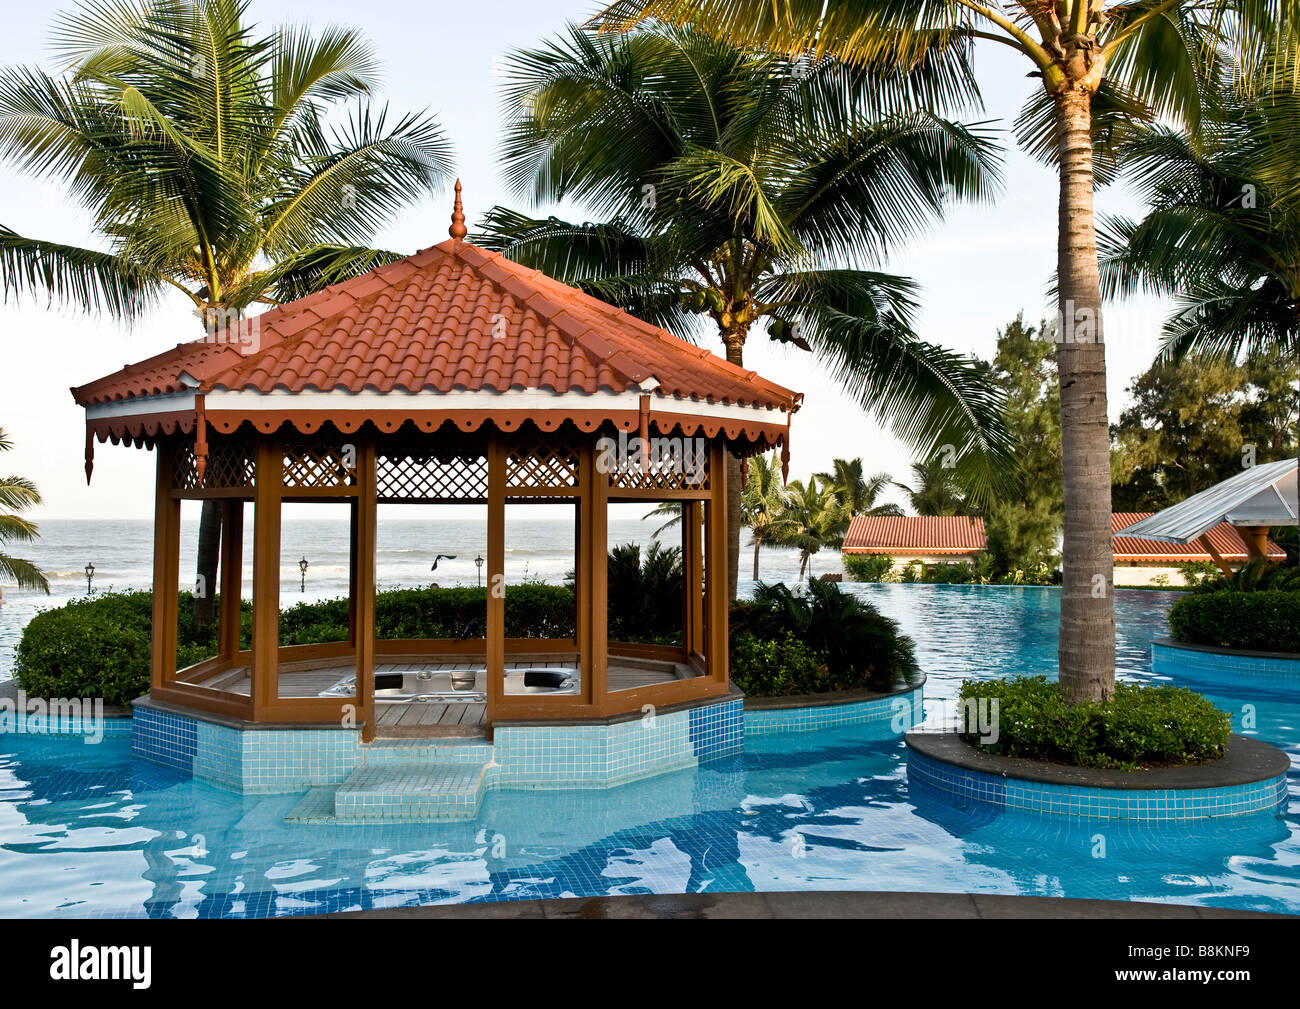 Cool Gazebo In Swimming Pool Surrounded By Islands Of Palm Trees Near A Sandy Beach